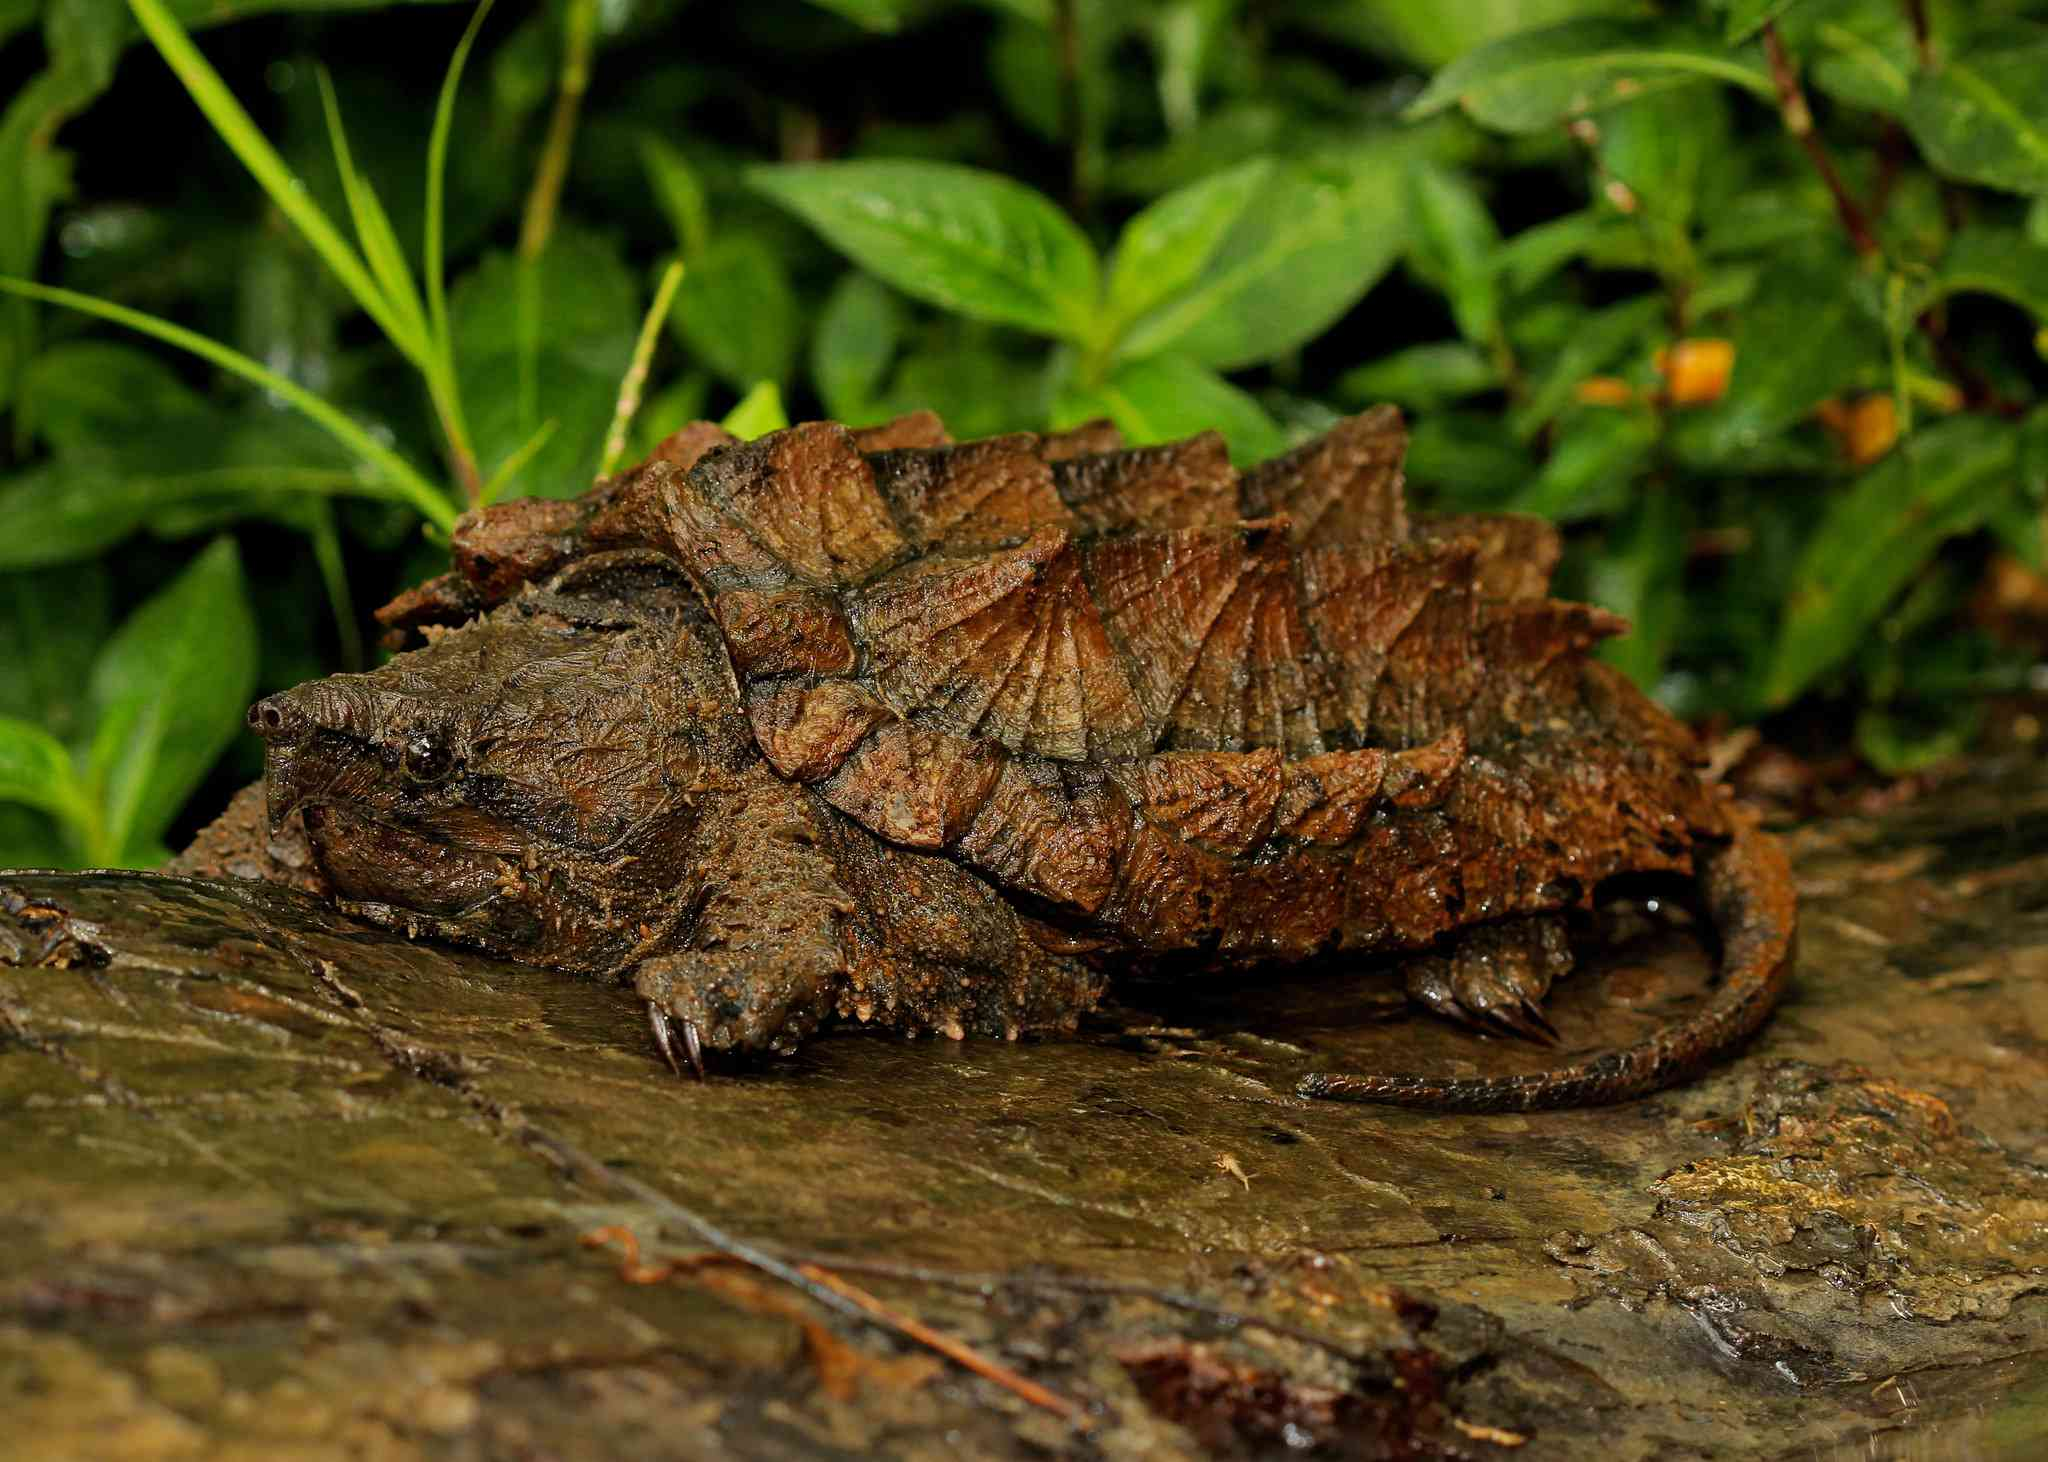 Alligator snapping turtle sitting on a rock